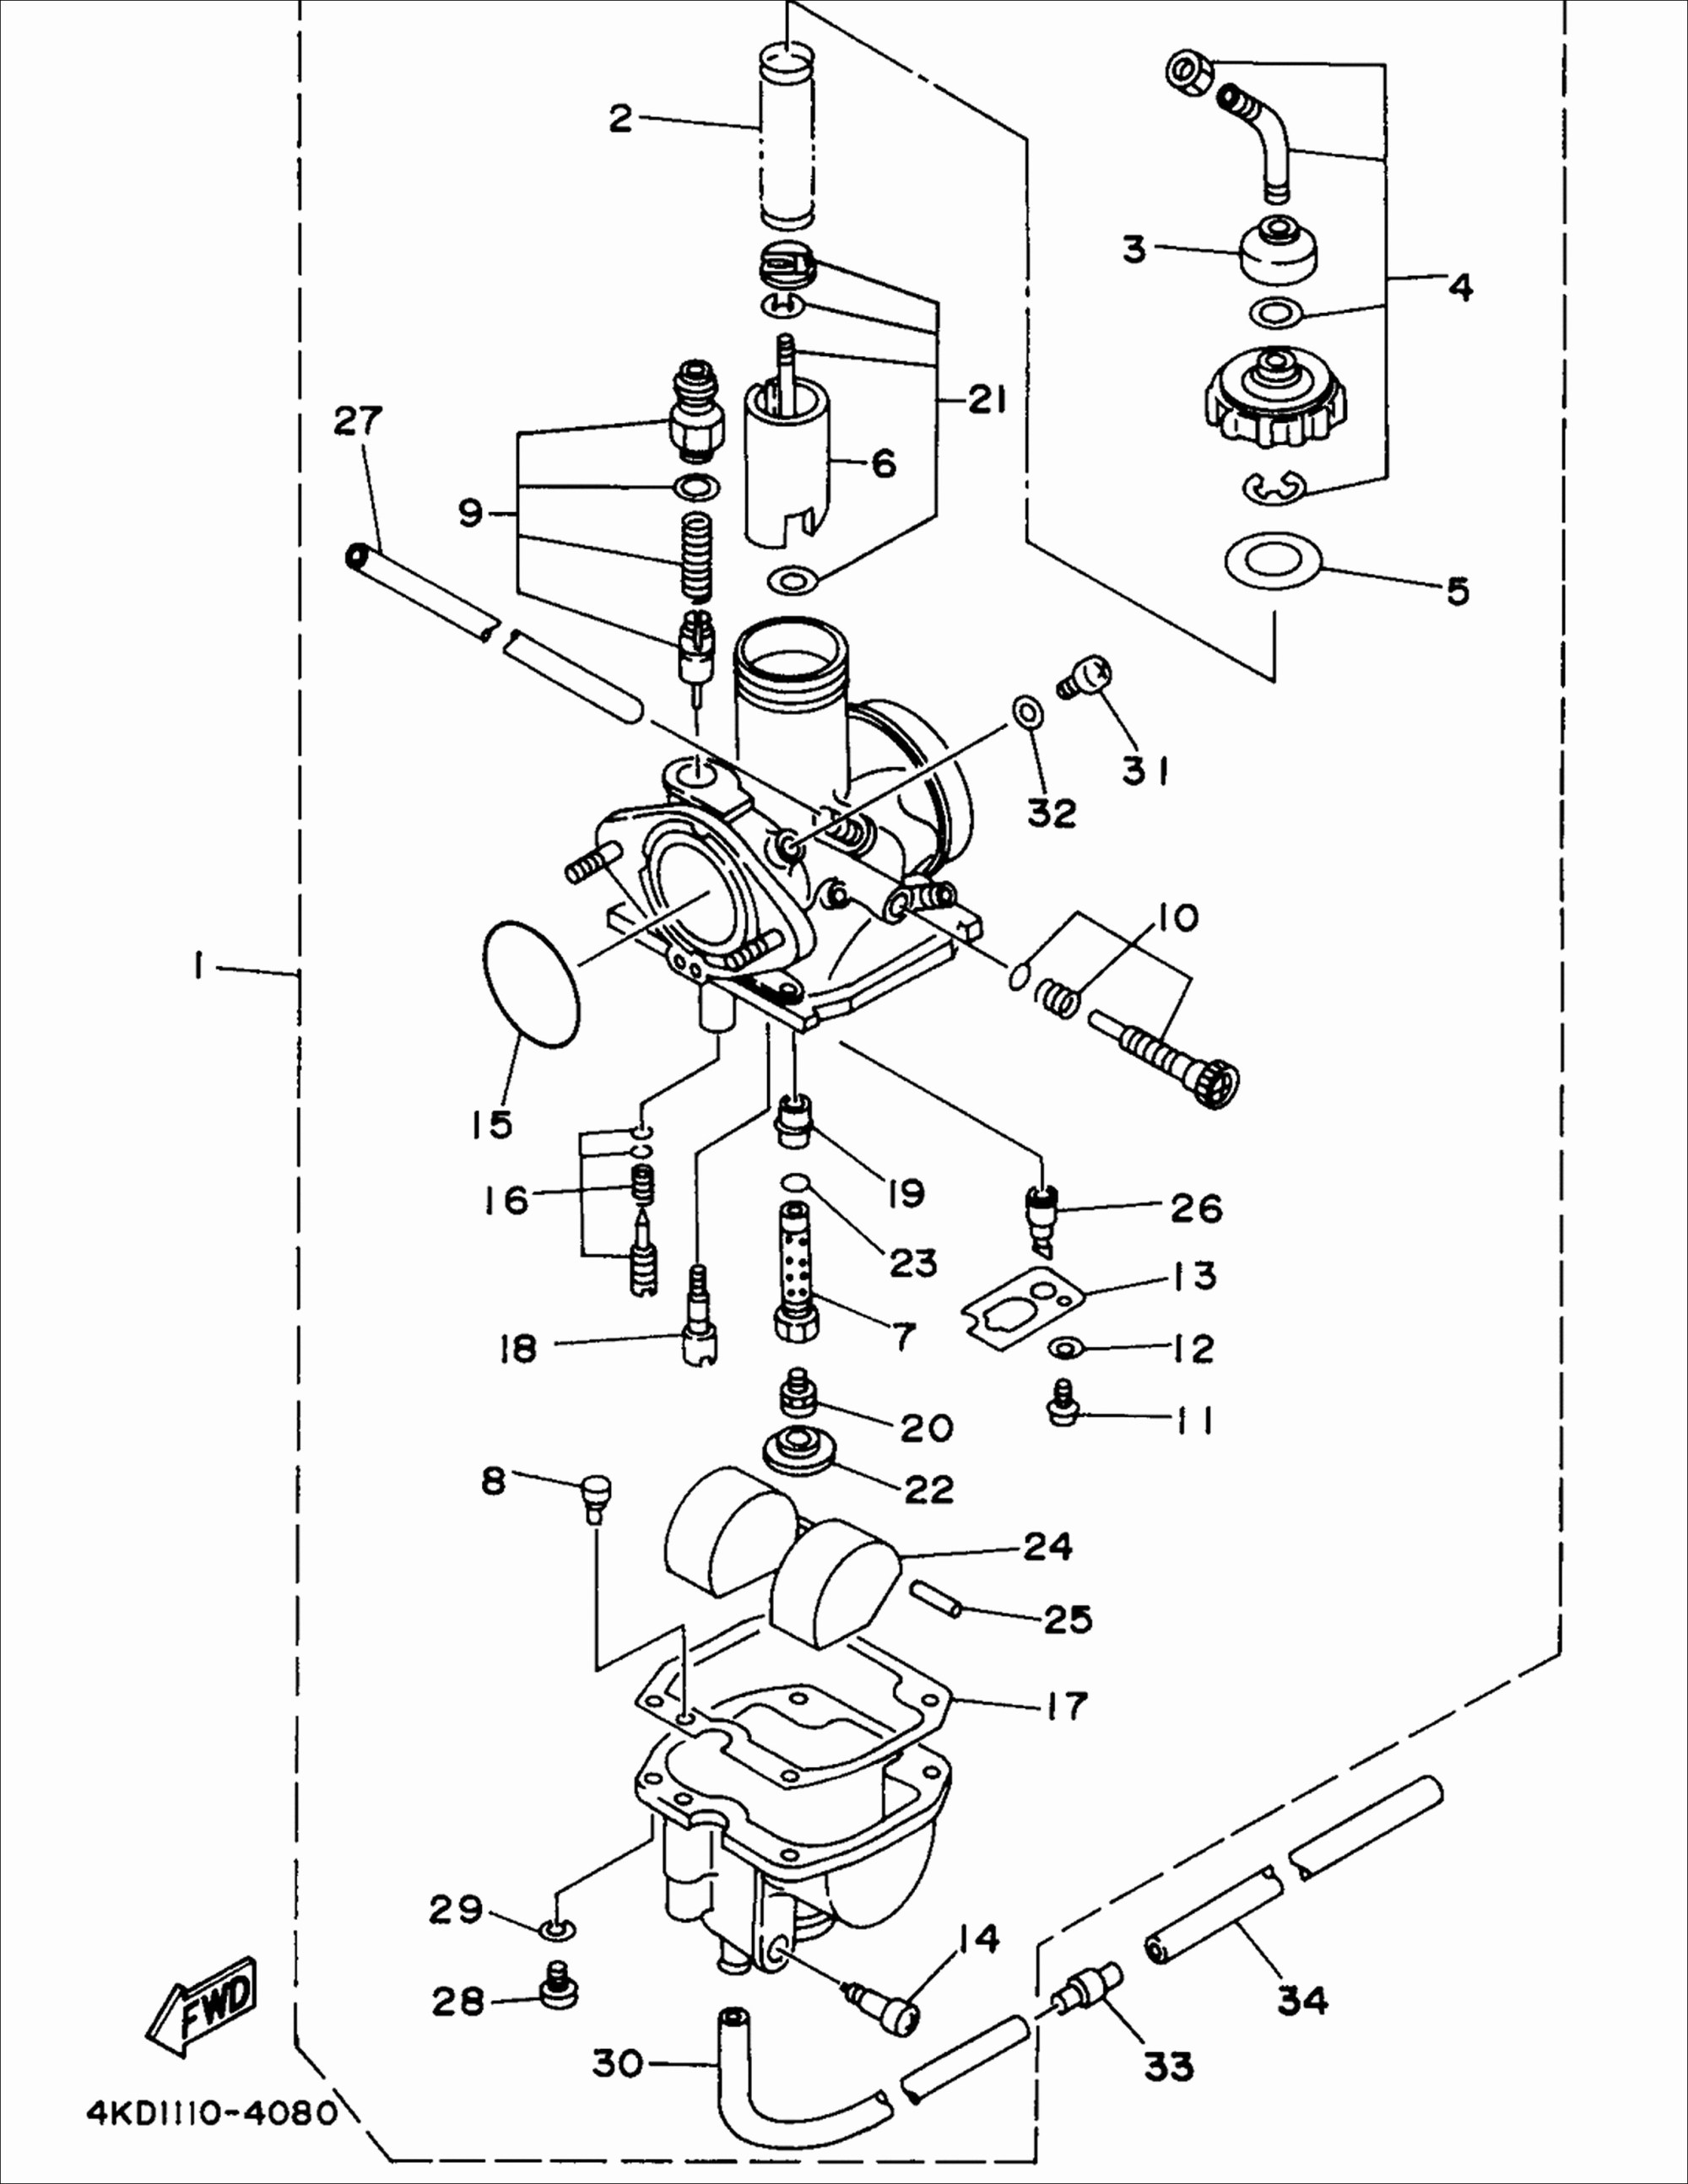 hight resolution of 1995 mitsubishi mirage ls engine diagram opinions about wiring 2000 mitsubishi galant wiring diagram 2001